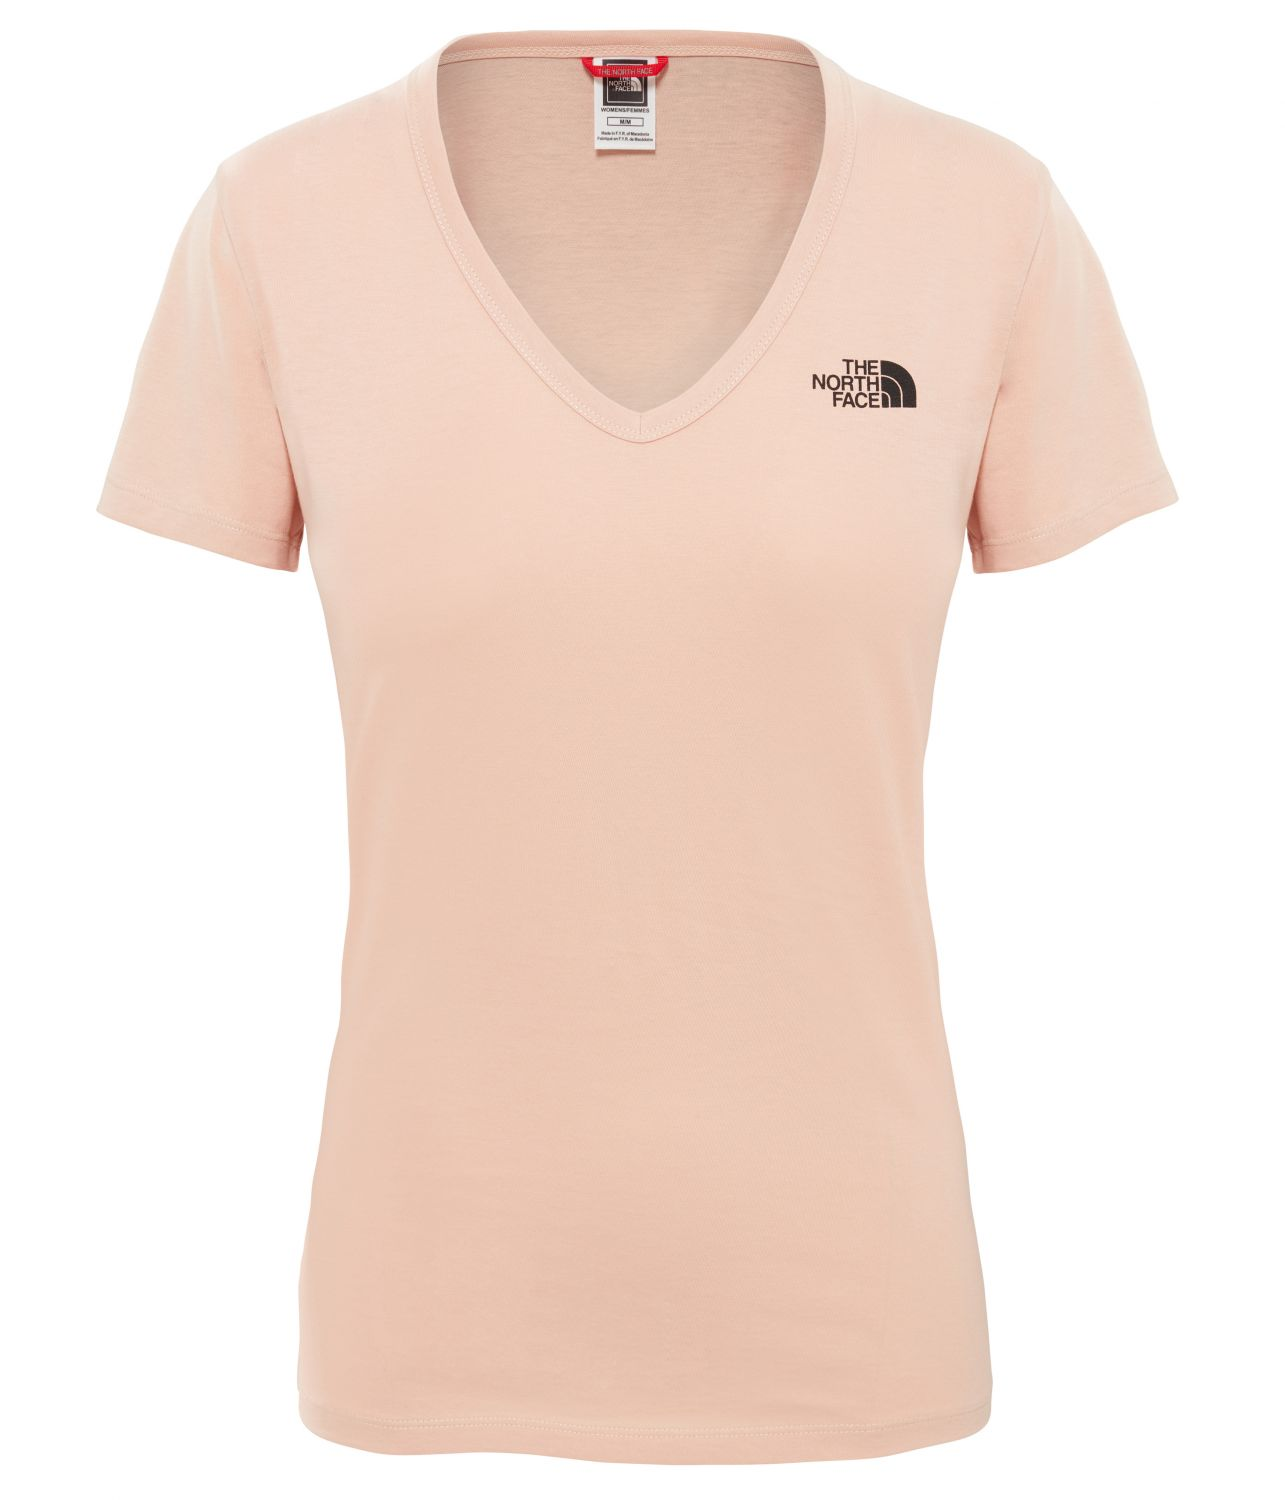 super popular 1dd29 f3fcd THE NORTH FACE S/S Dimple Dom Damen T-Shirt